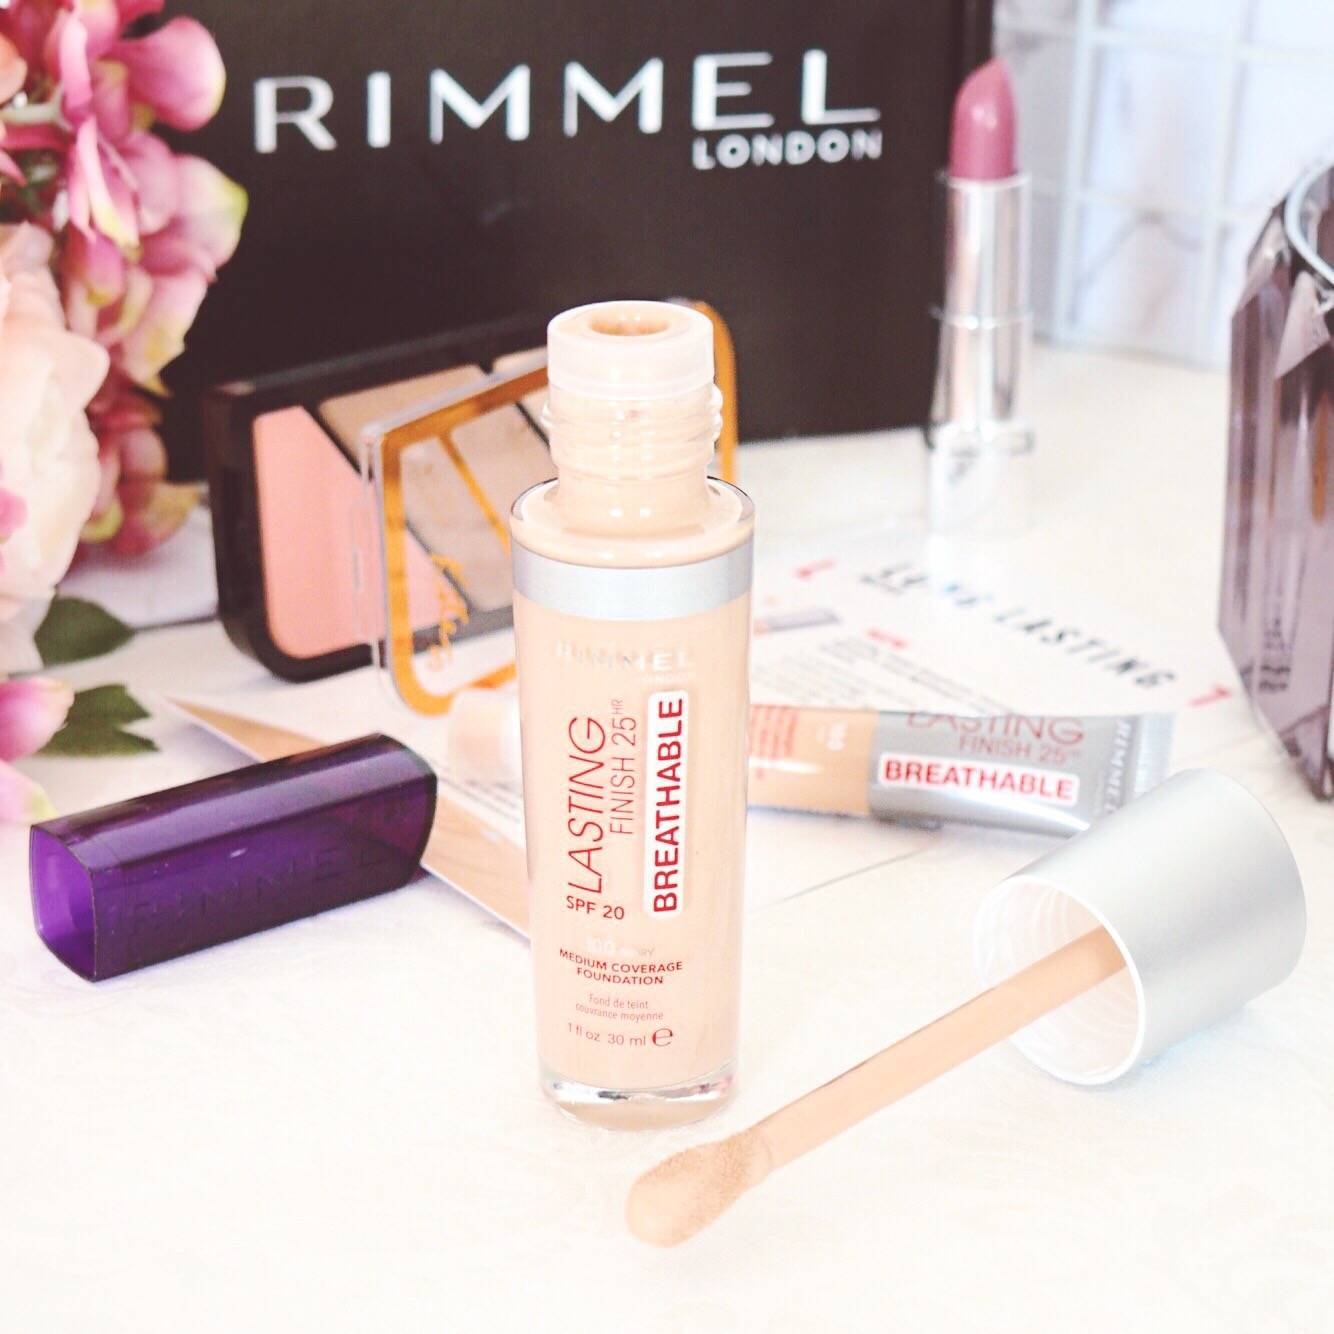 Rimmel London Long Lasting Breathable Foundation